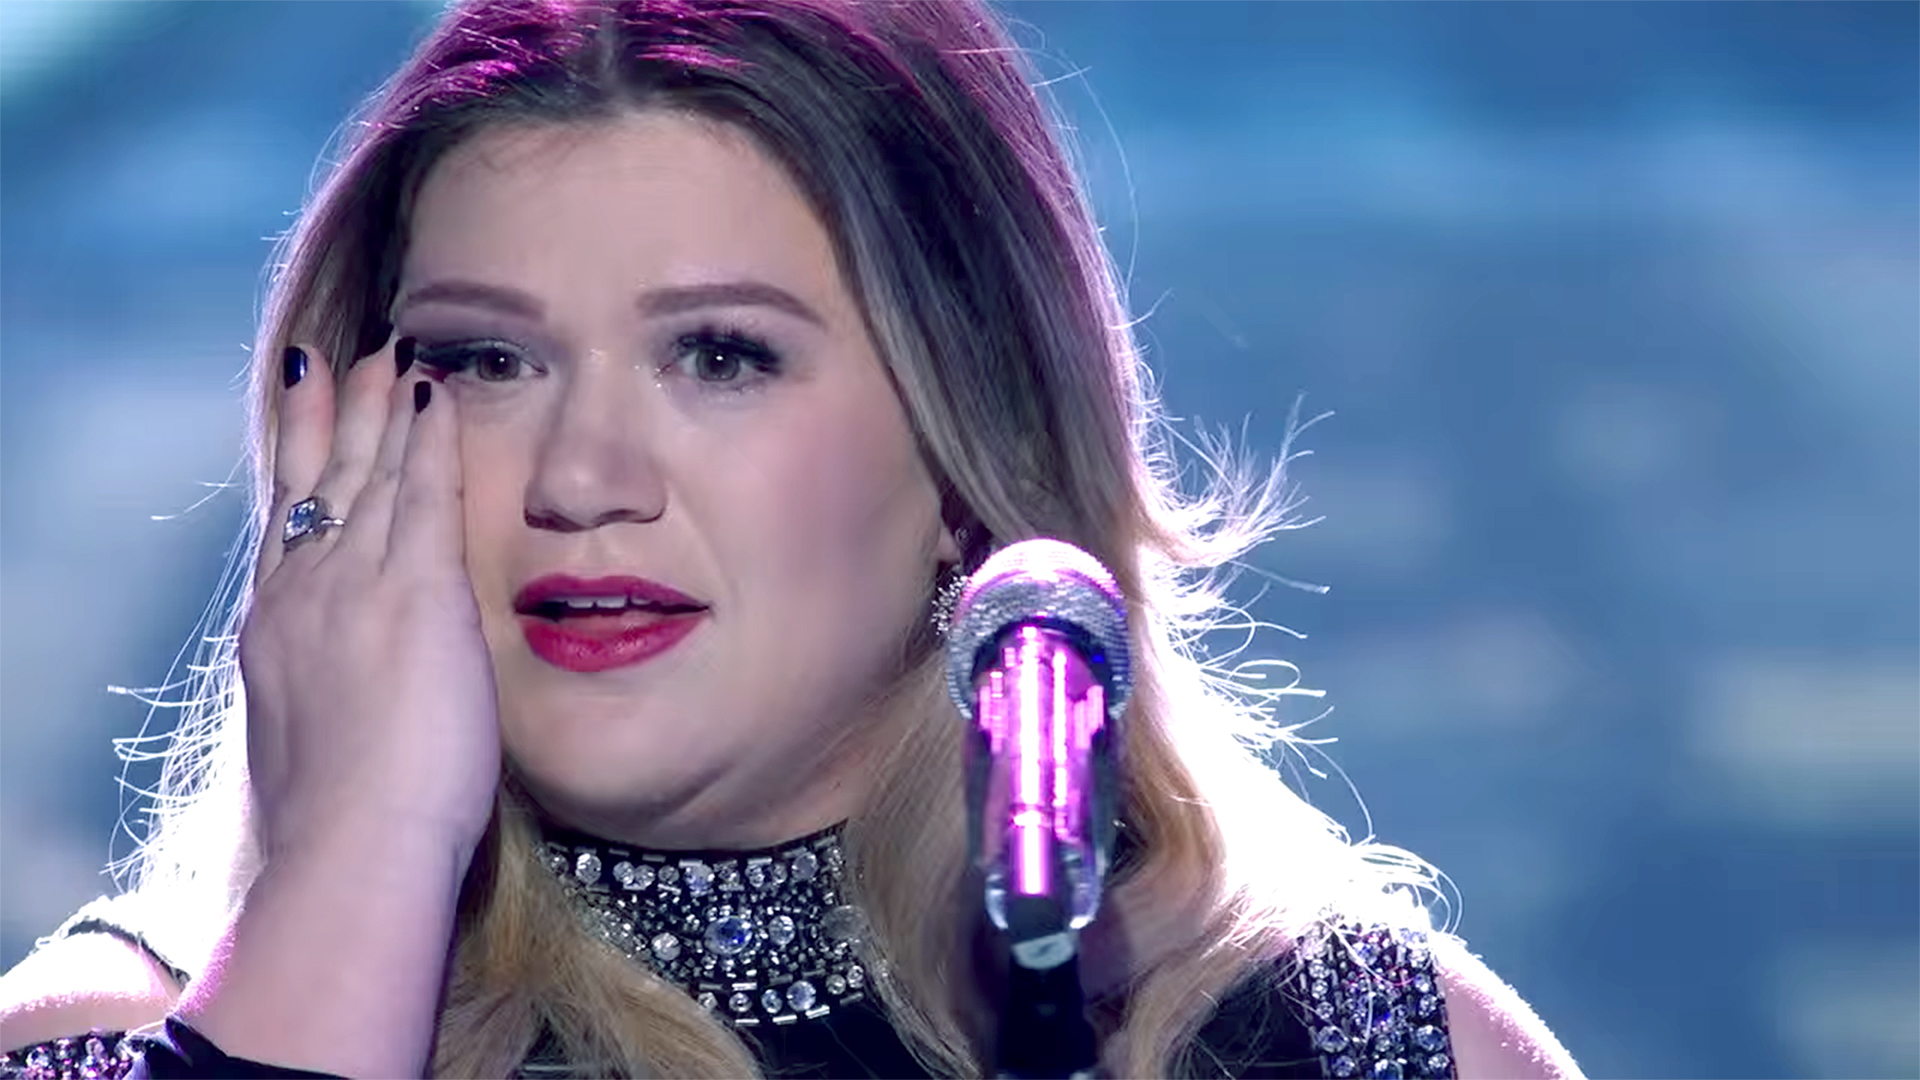 Kelly Clarkson Images